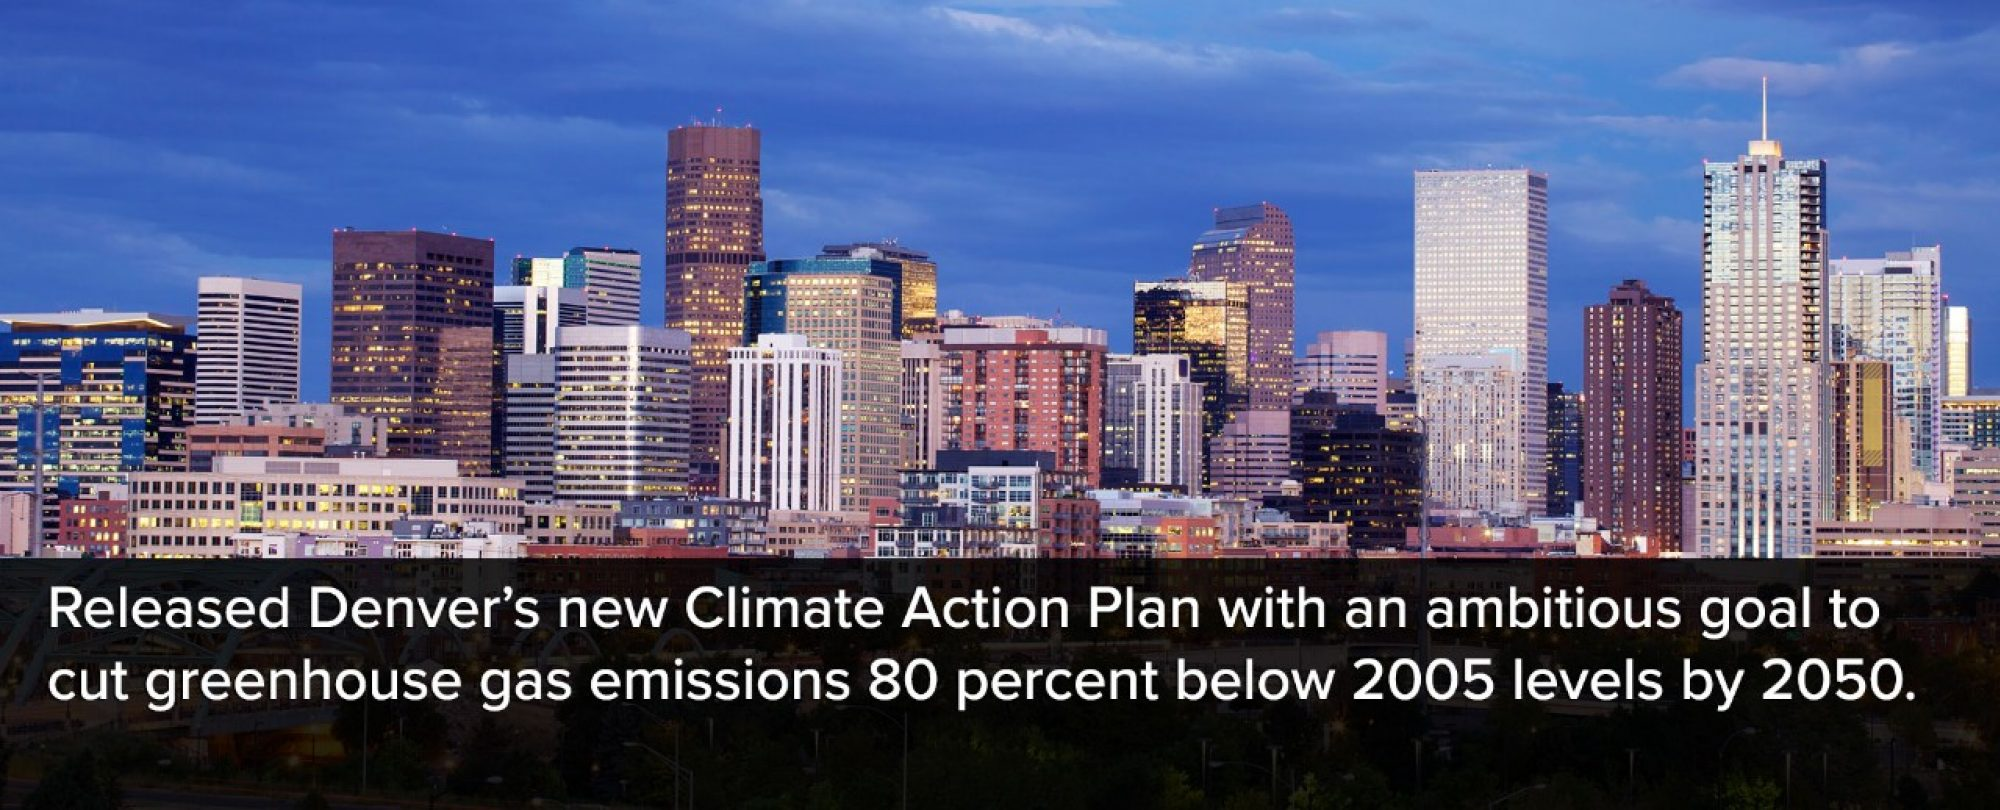 Photo of Denver city skyline. Denver released it's new Climate Action Plan with an ambitious goal to cut greenhouse gas emissions 80 percent below 2005 levels by 2050